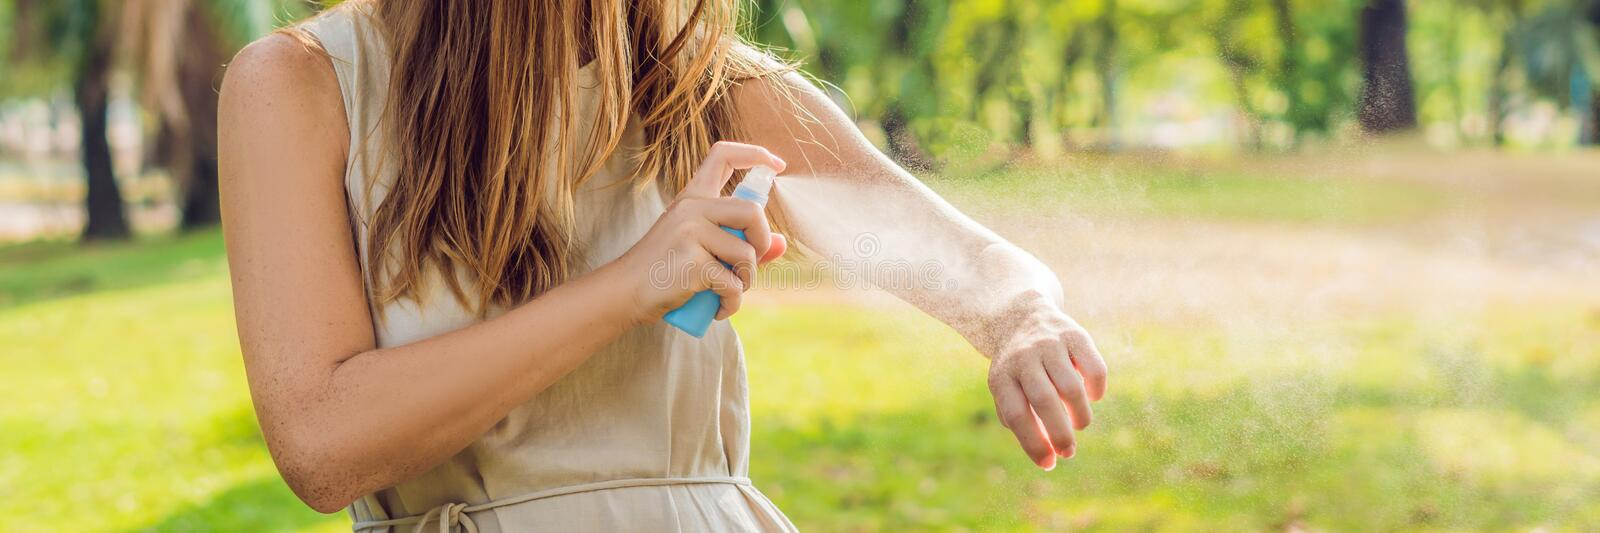 Woman spraying insect repellent on skin outdoor BANNER, long format. Woman spraying insect repellent on skin outdoor. BANNER, long format stock photos